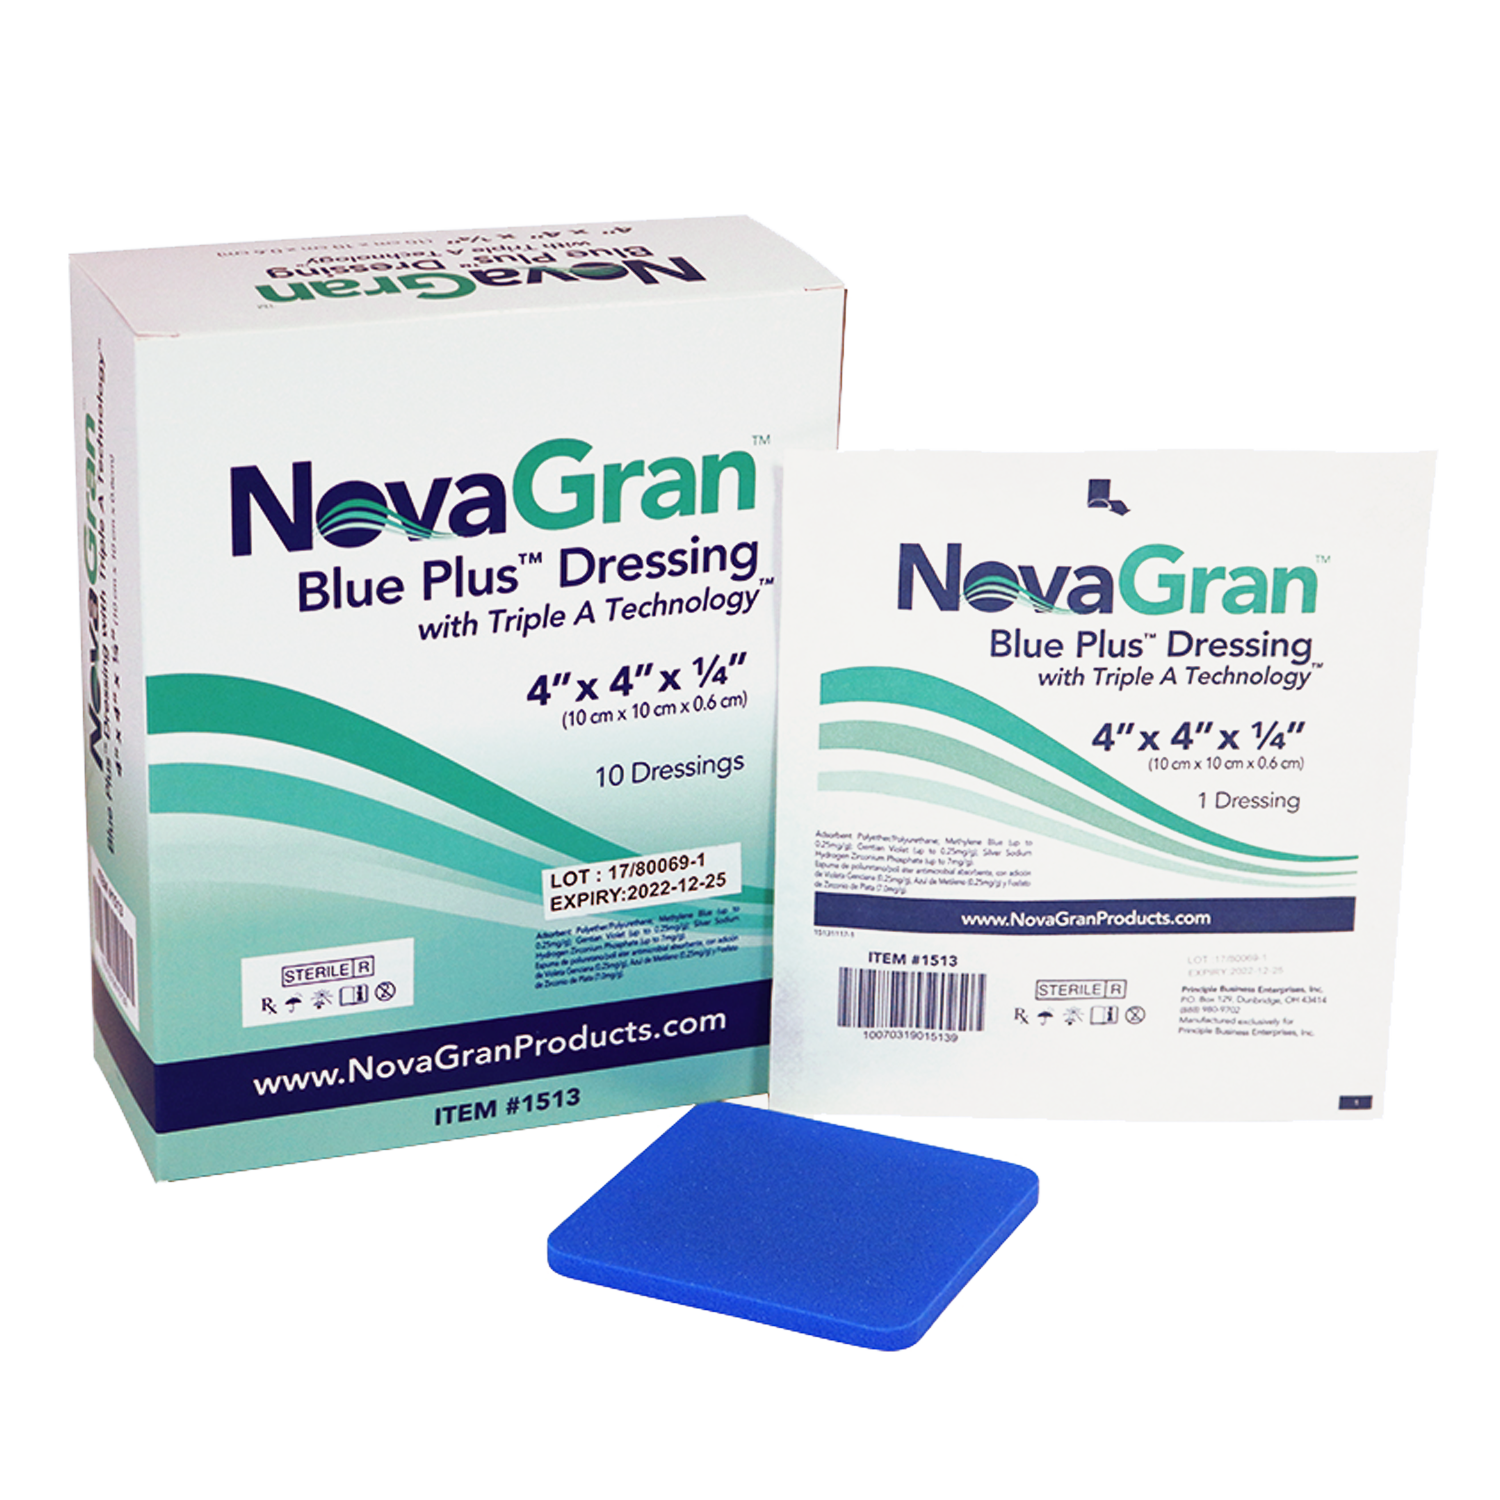 NovaGran Blue Plus Dressing